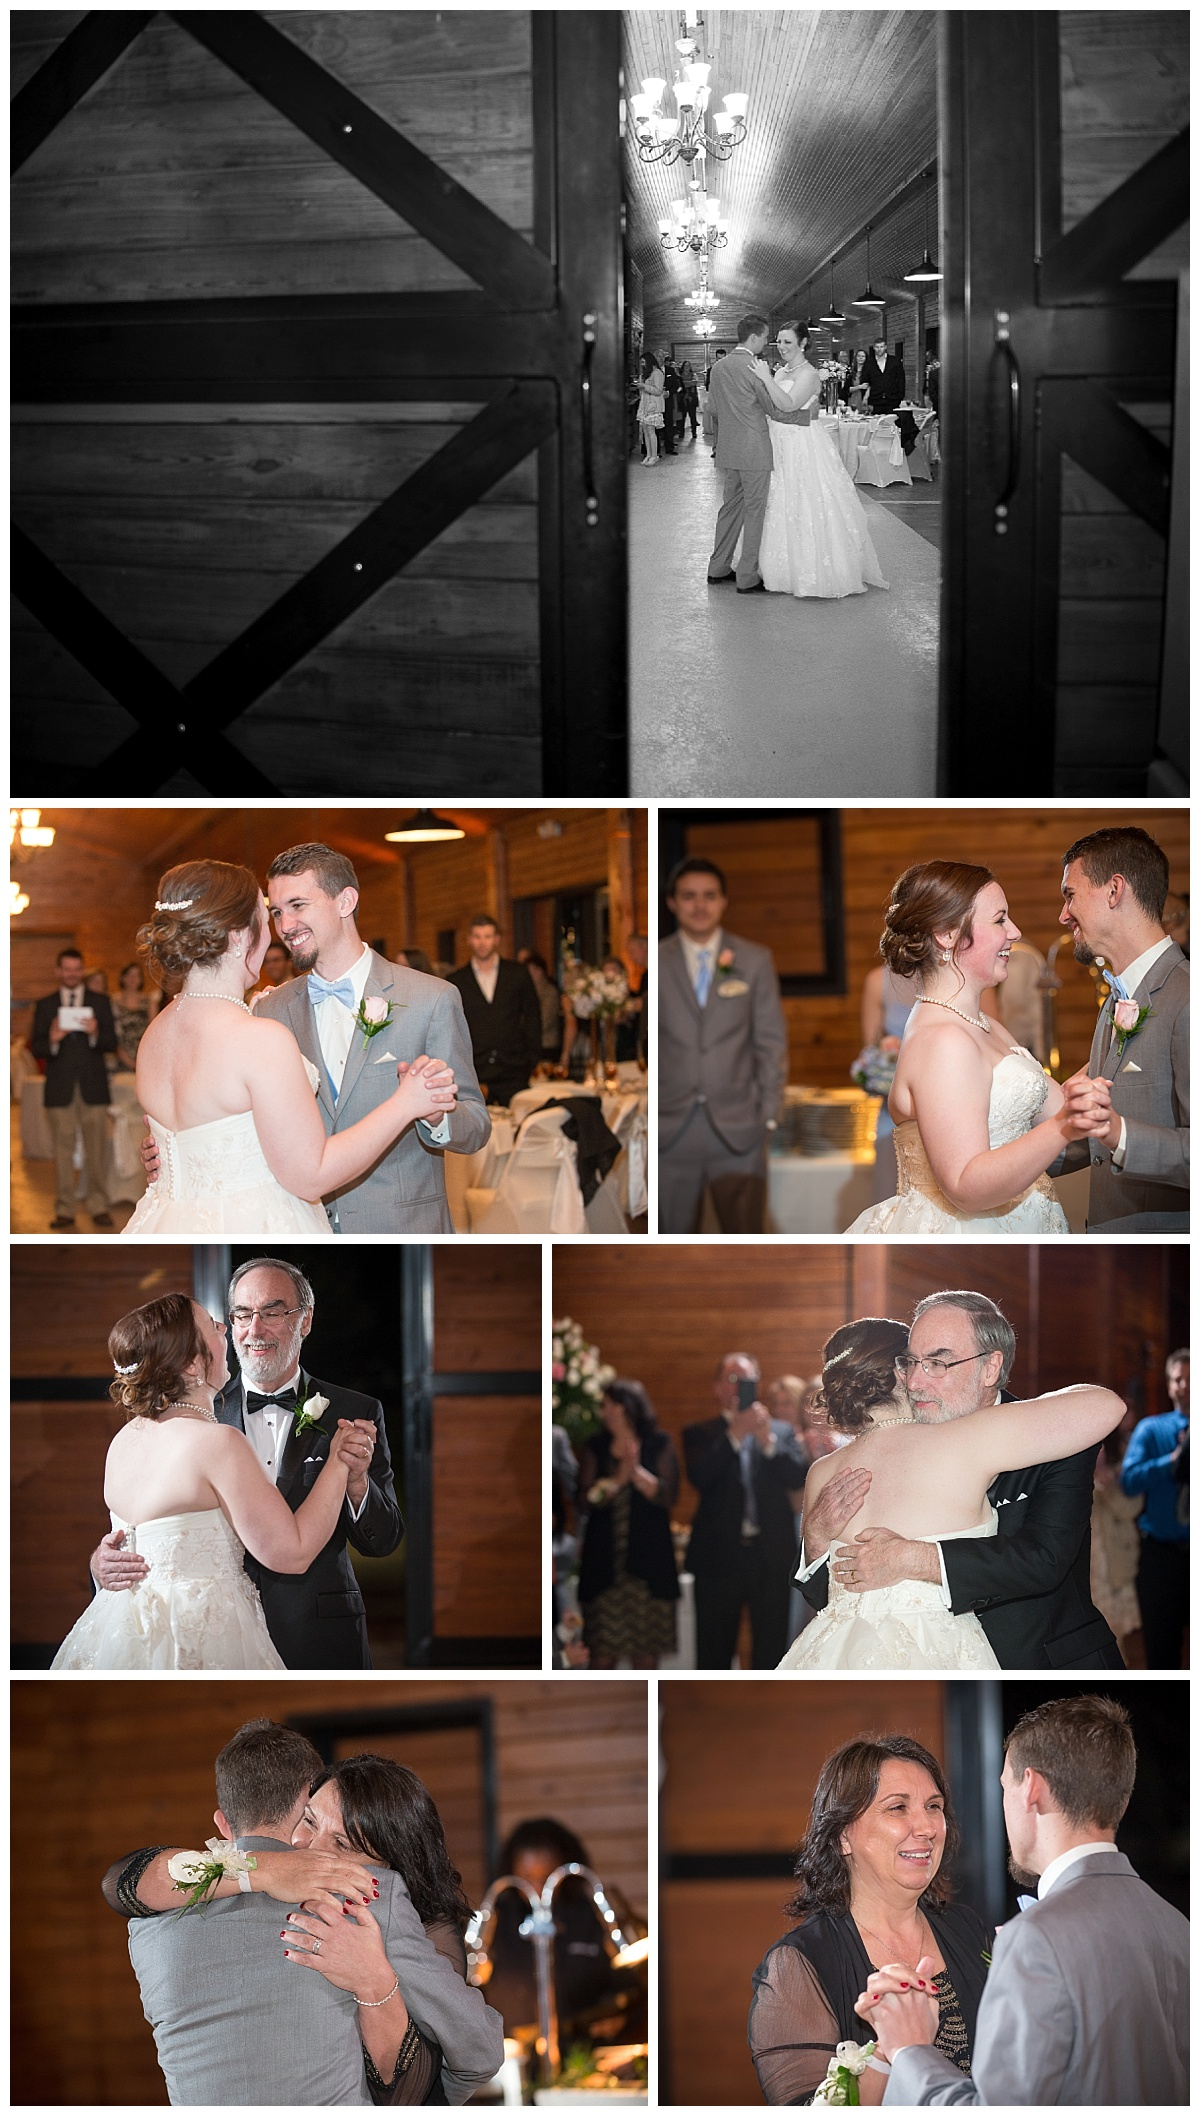 First Dances in the barn